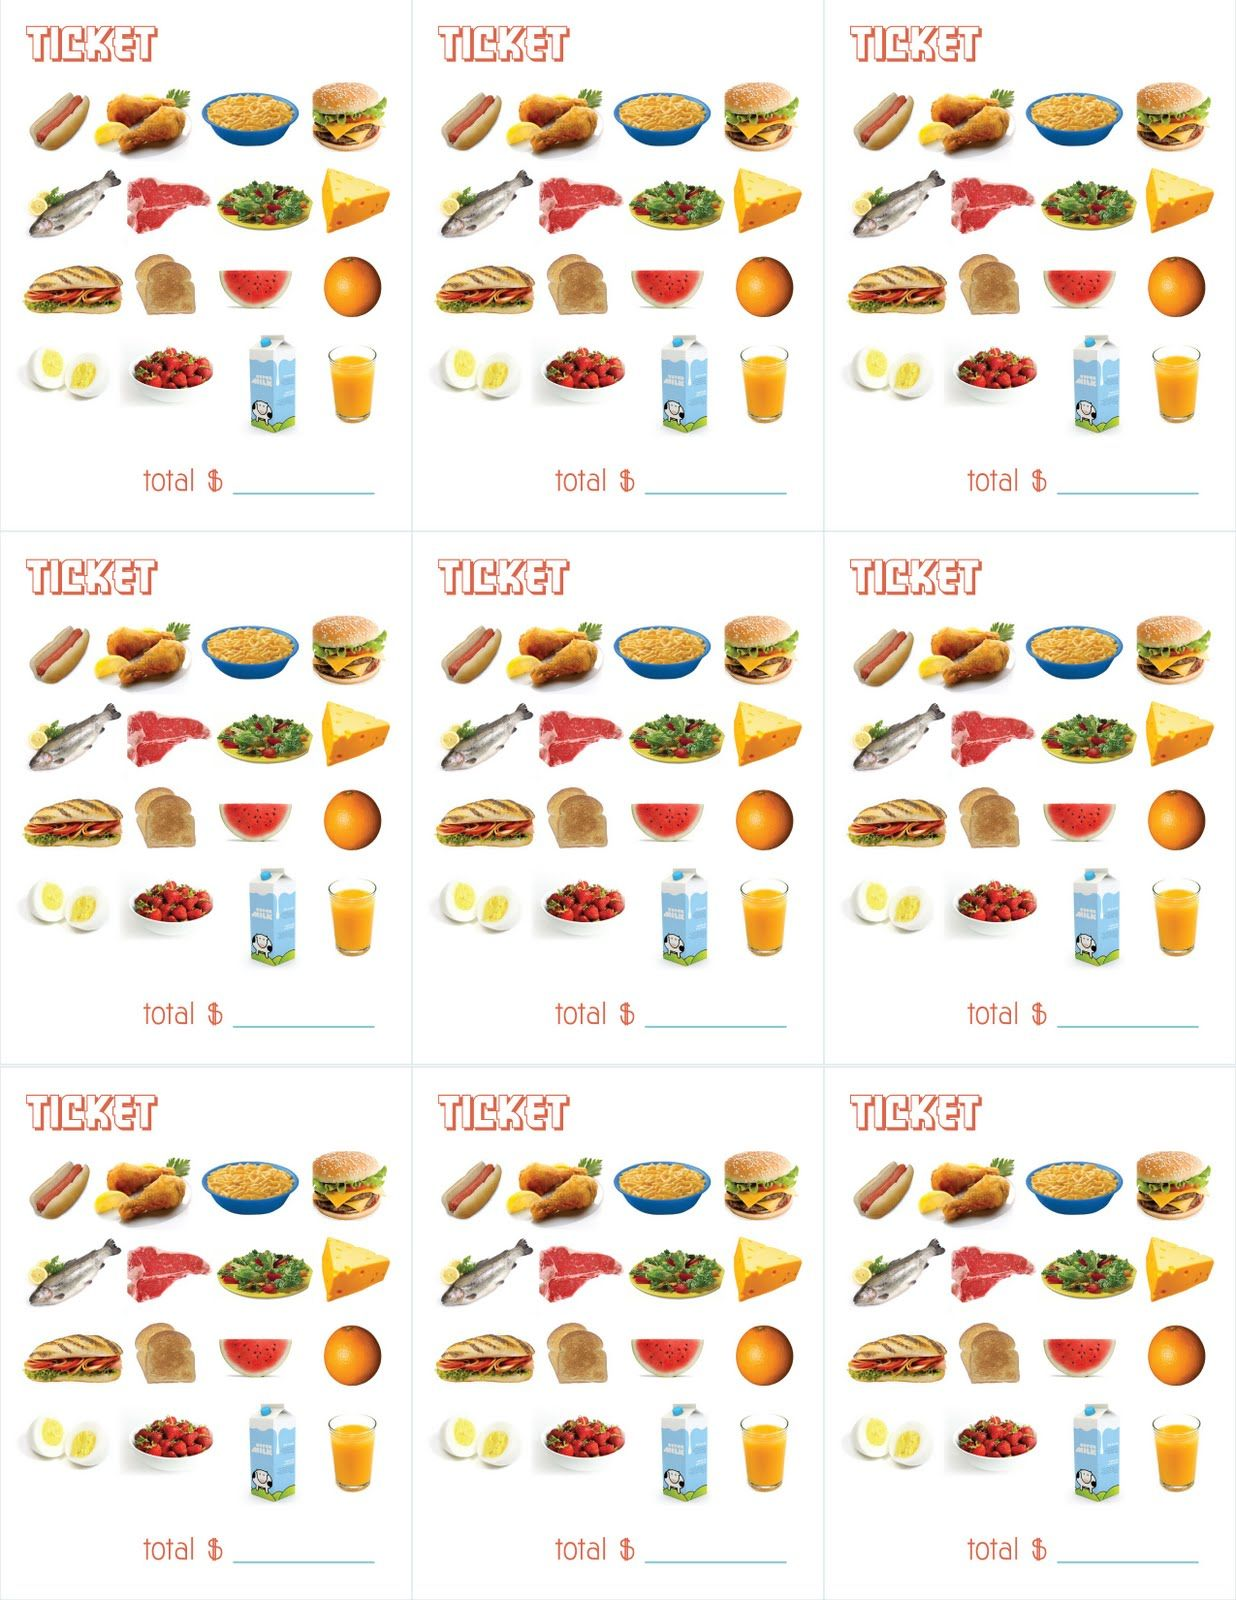 Delightful Distractions Printable Menus For Playing Restaurant Kids Can Practice Using